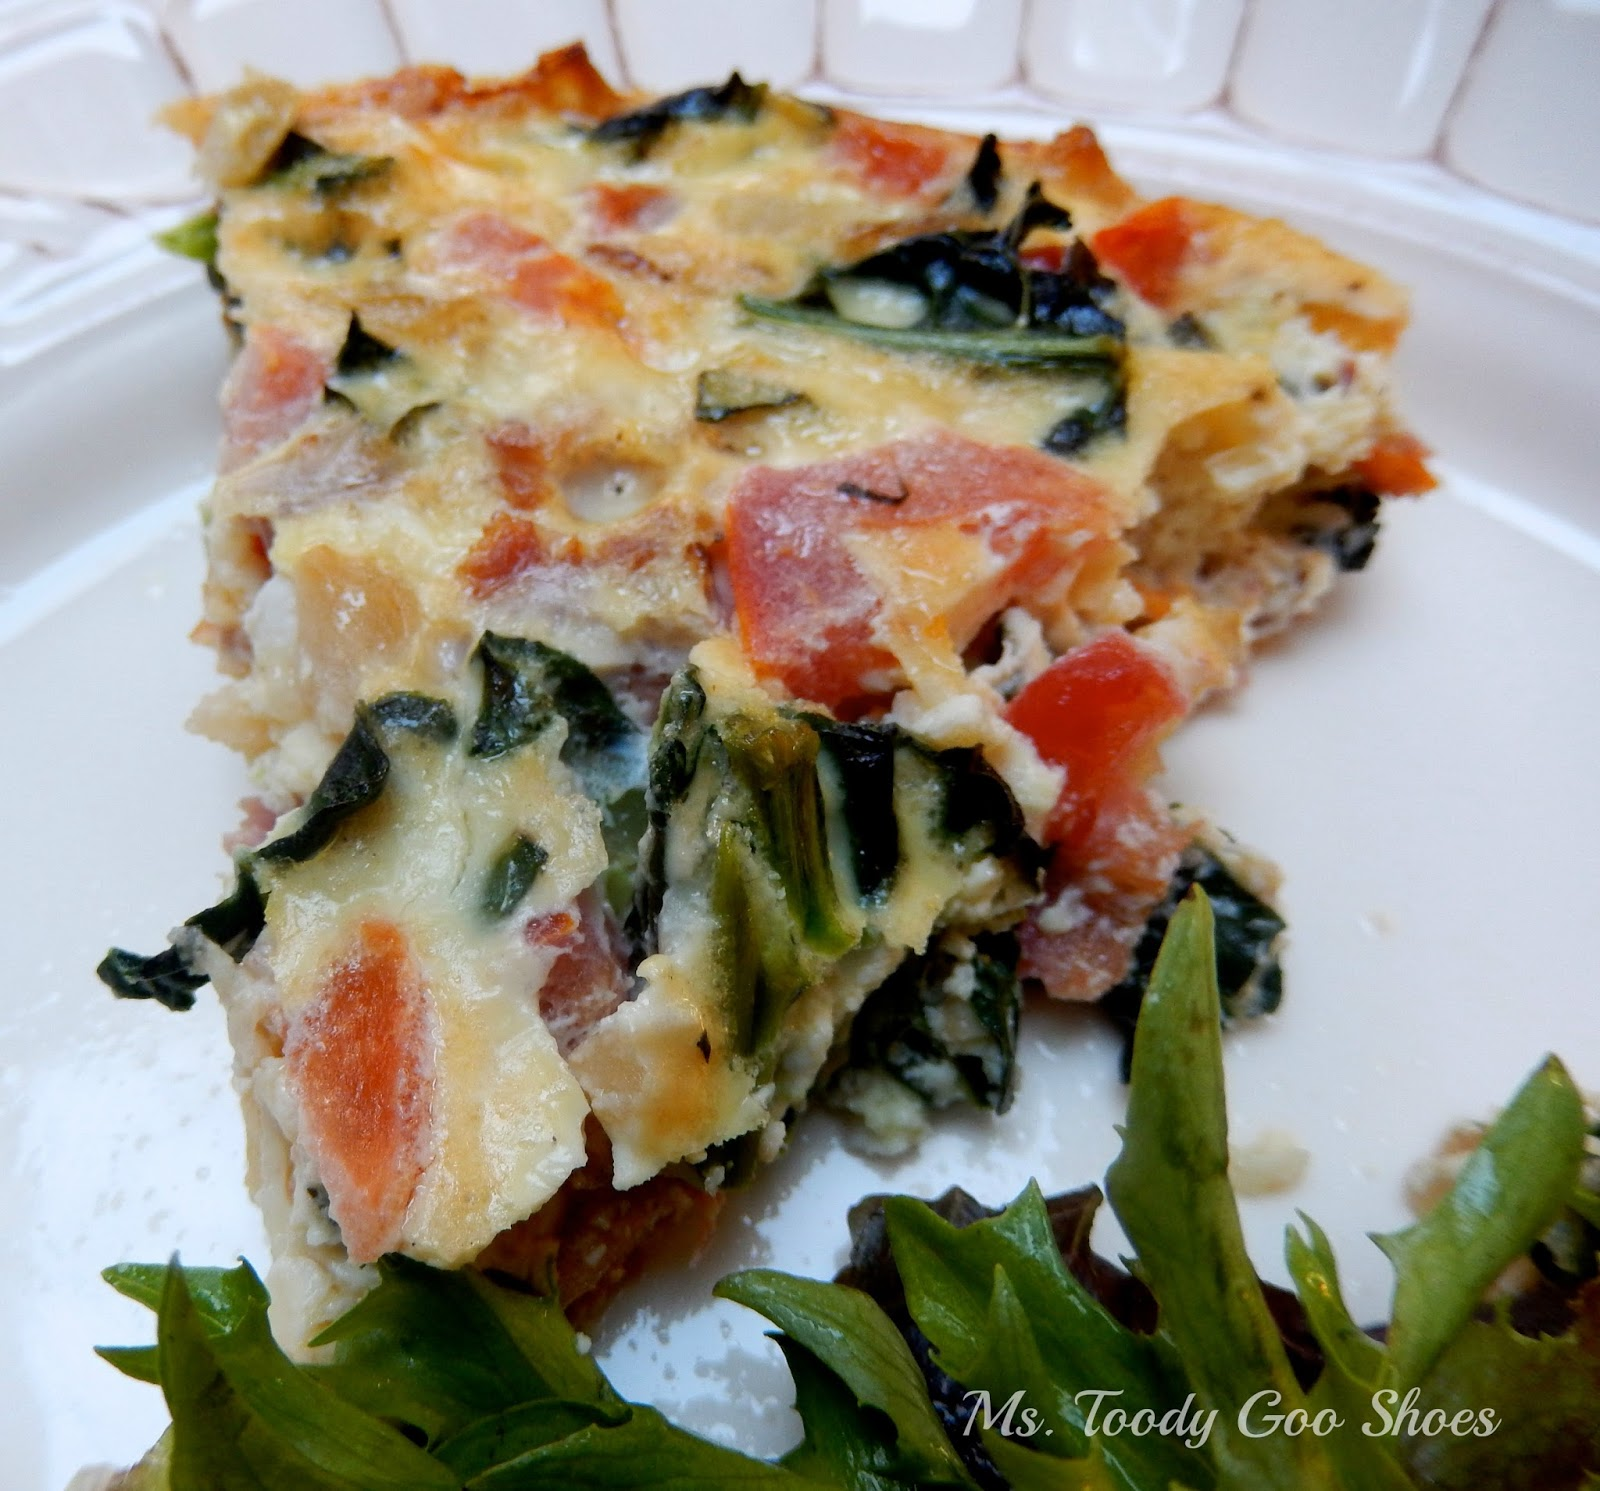 Tomato, Basil and Kale Frittata --- Ms. Toody Goo Shoes